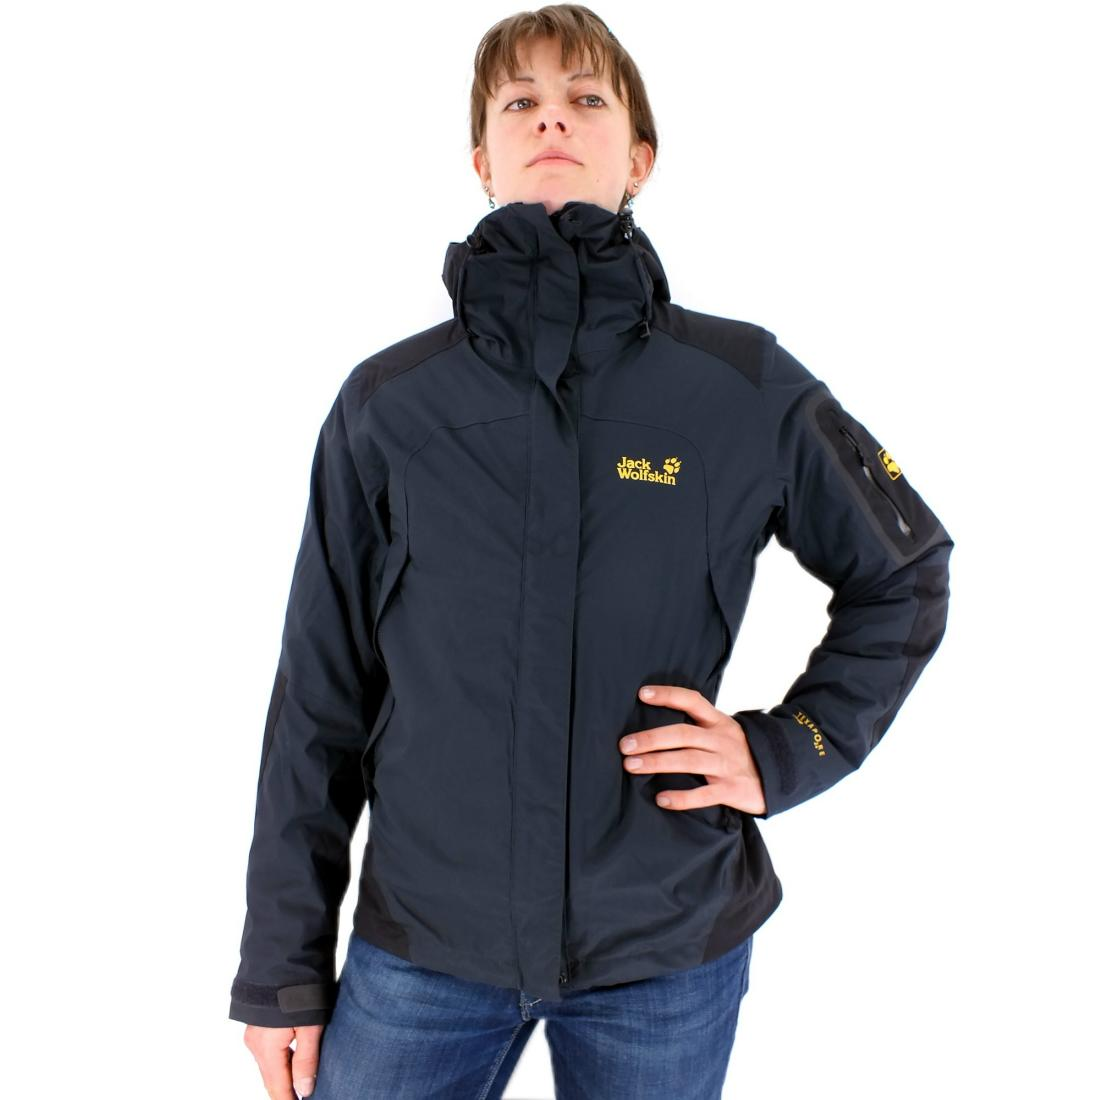 jack wolfskin cascade mountain women damen dunkelblau jacke winterjacke skijacke ebay. Black Bedroom Furniture Sets. Home Design Ideas